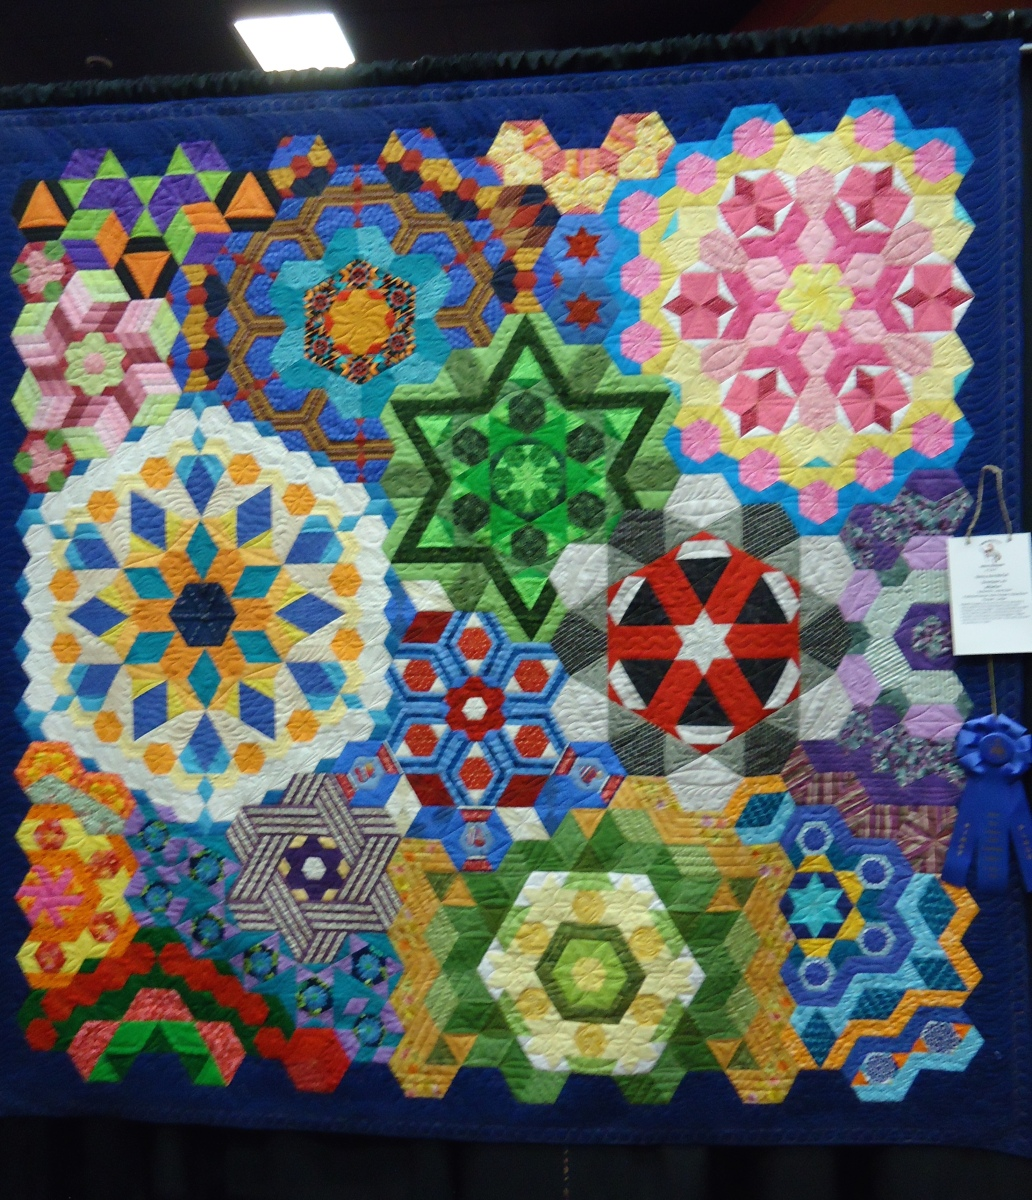 12th Annual Rim Country Quilt Roundup